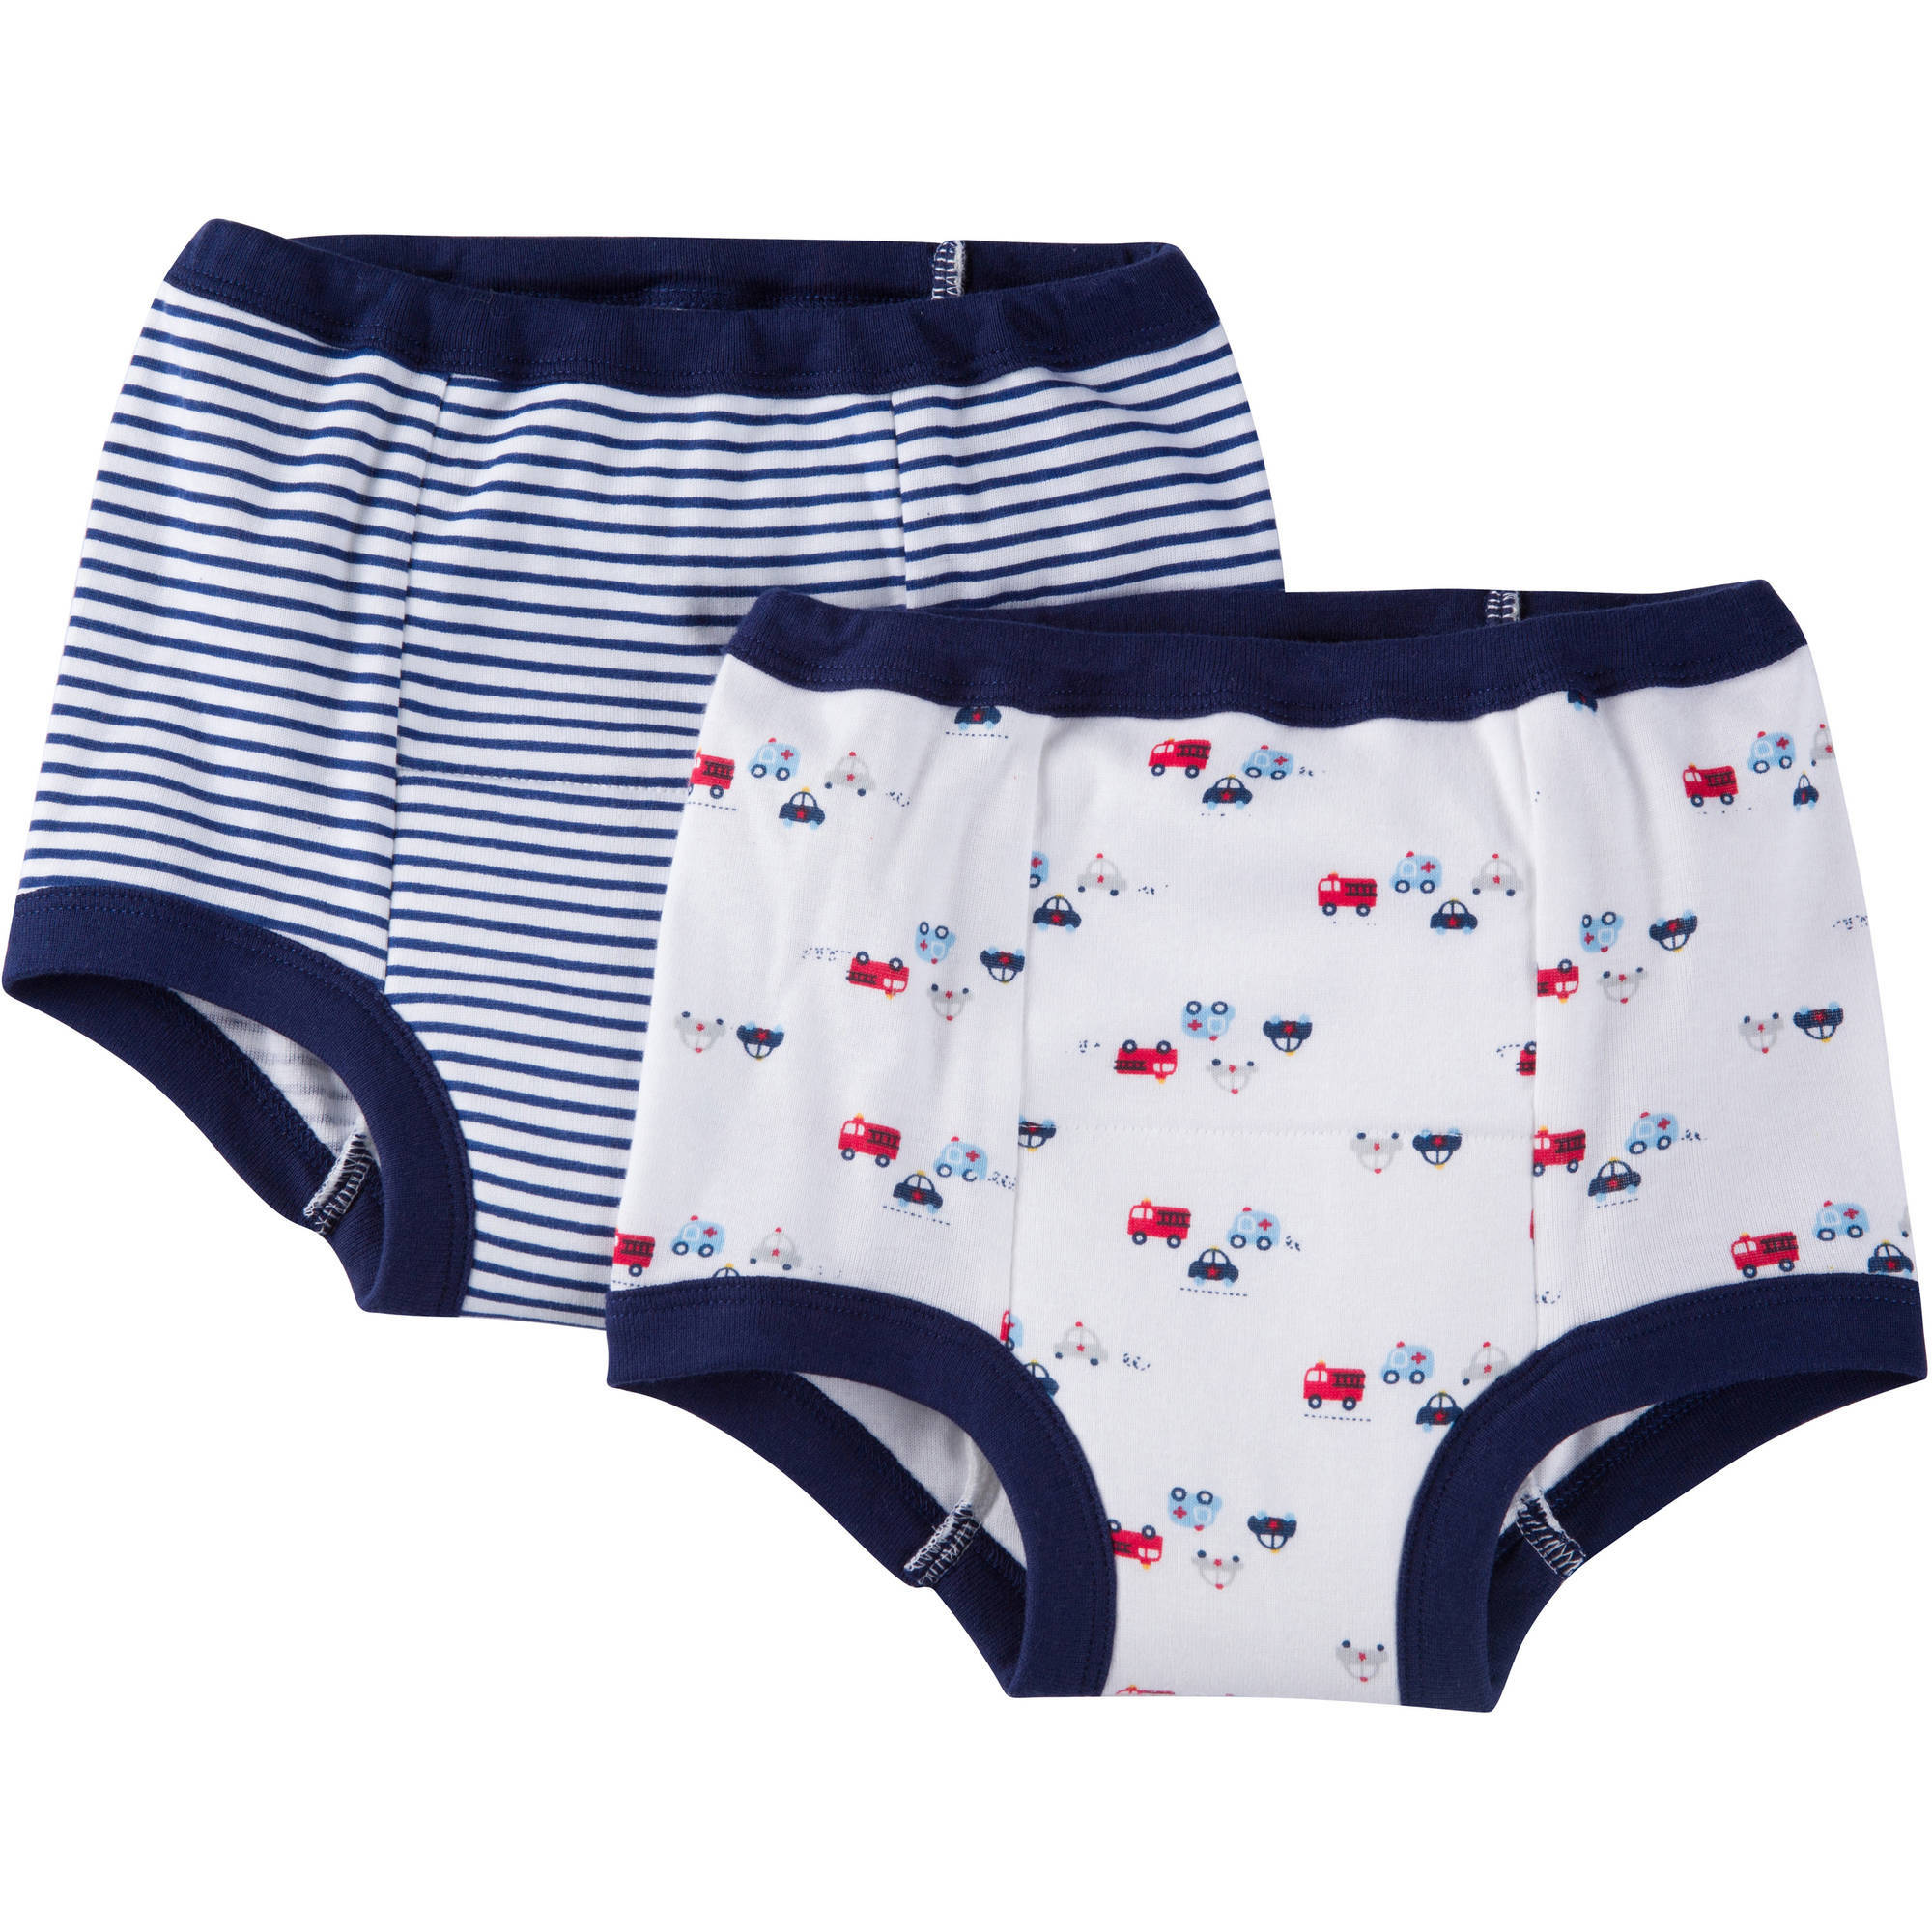 Gerber Baby Toddler Boys Firetruck 100% Cotton Training Pants, 2-Pack